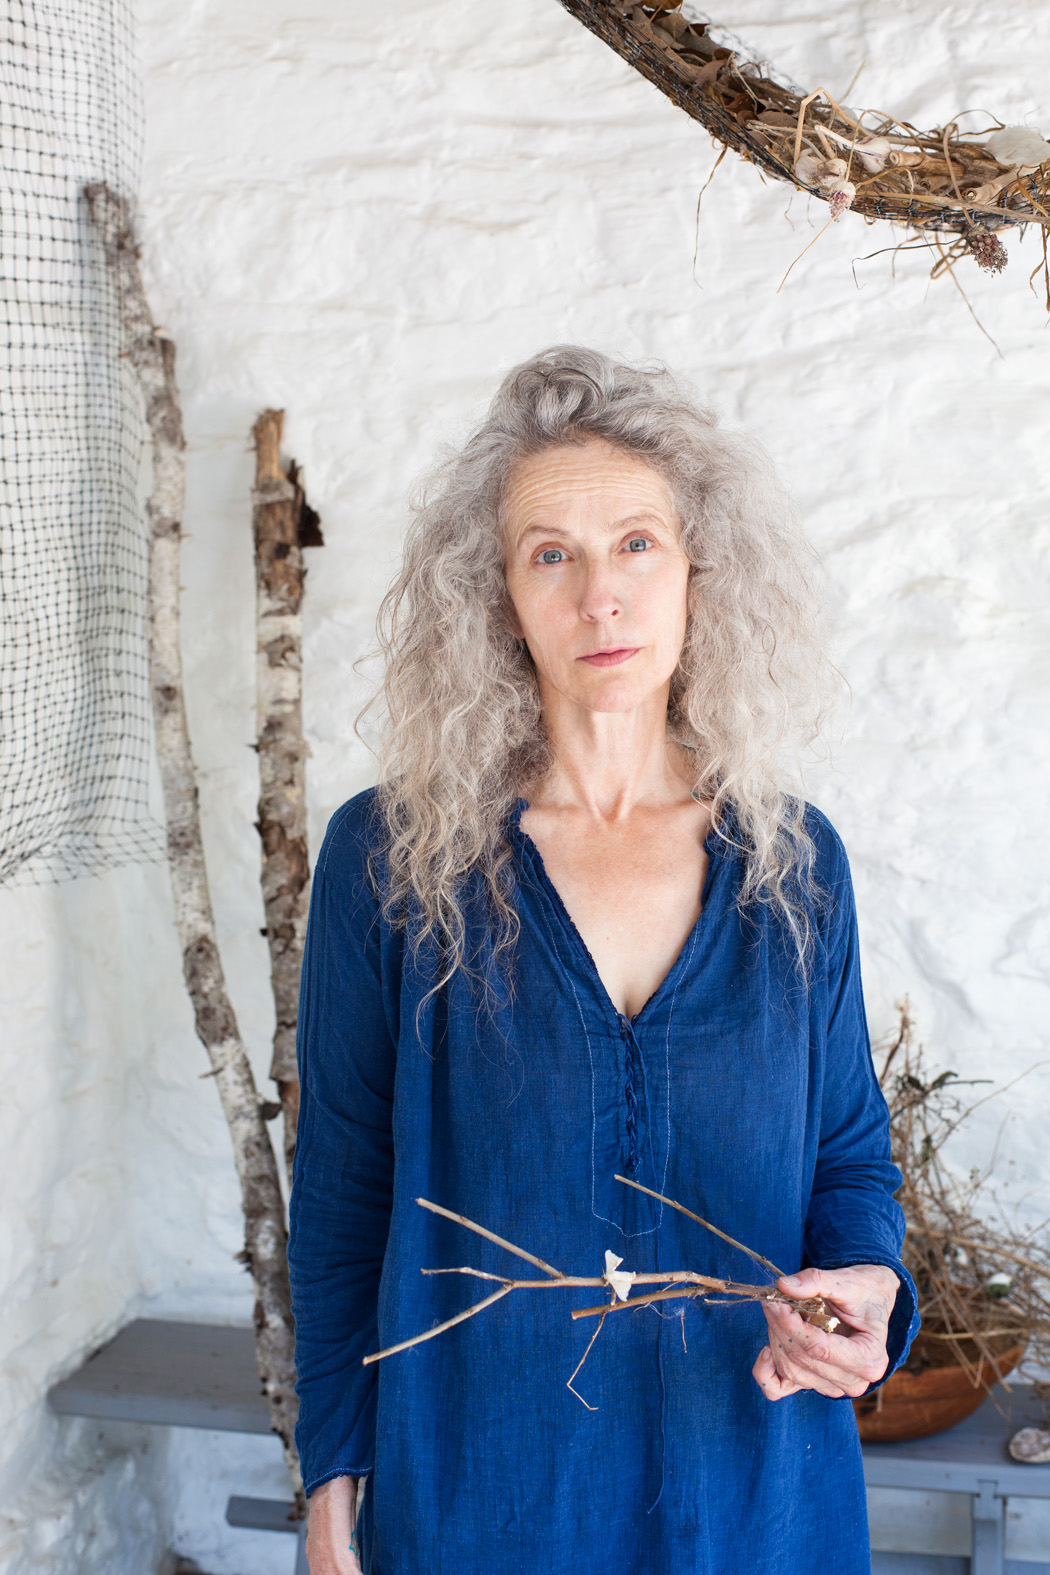 Kiki Smith by Nina Subin. Image courtesy of Wikimedia Creative Commons